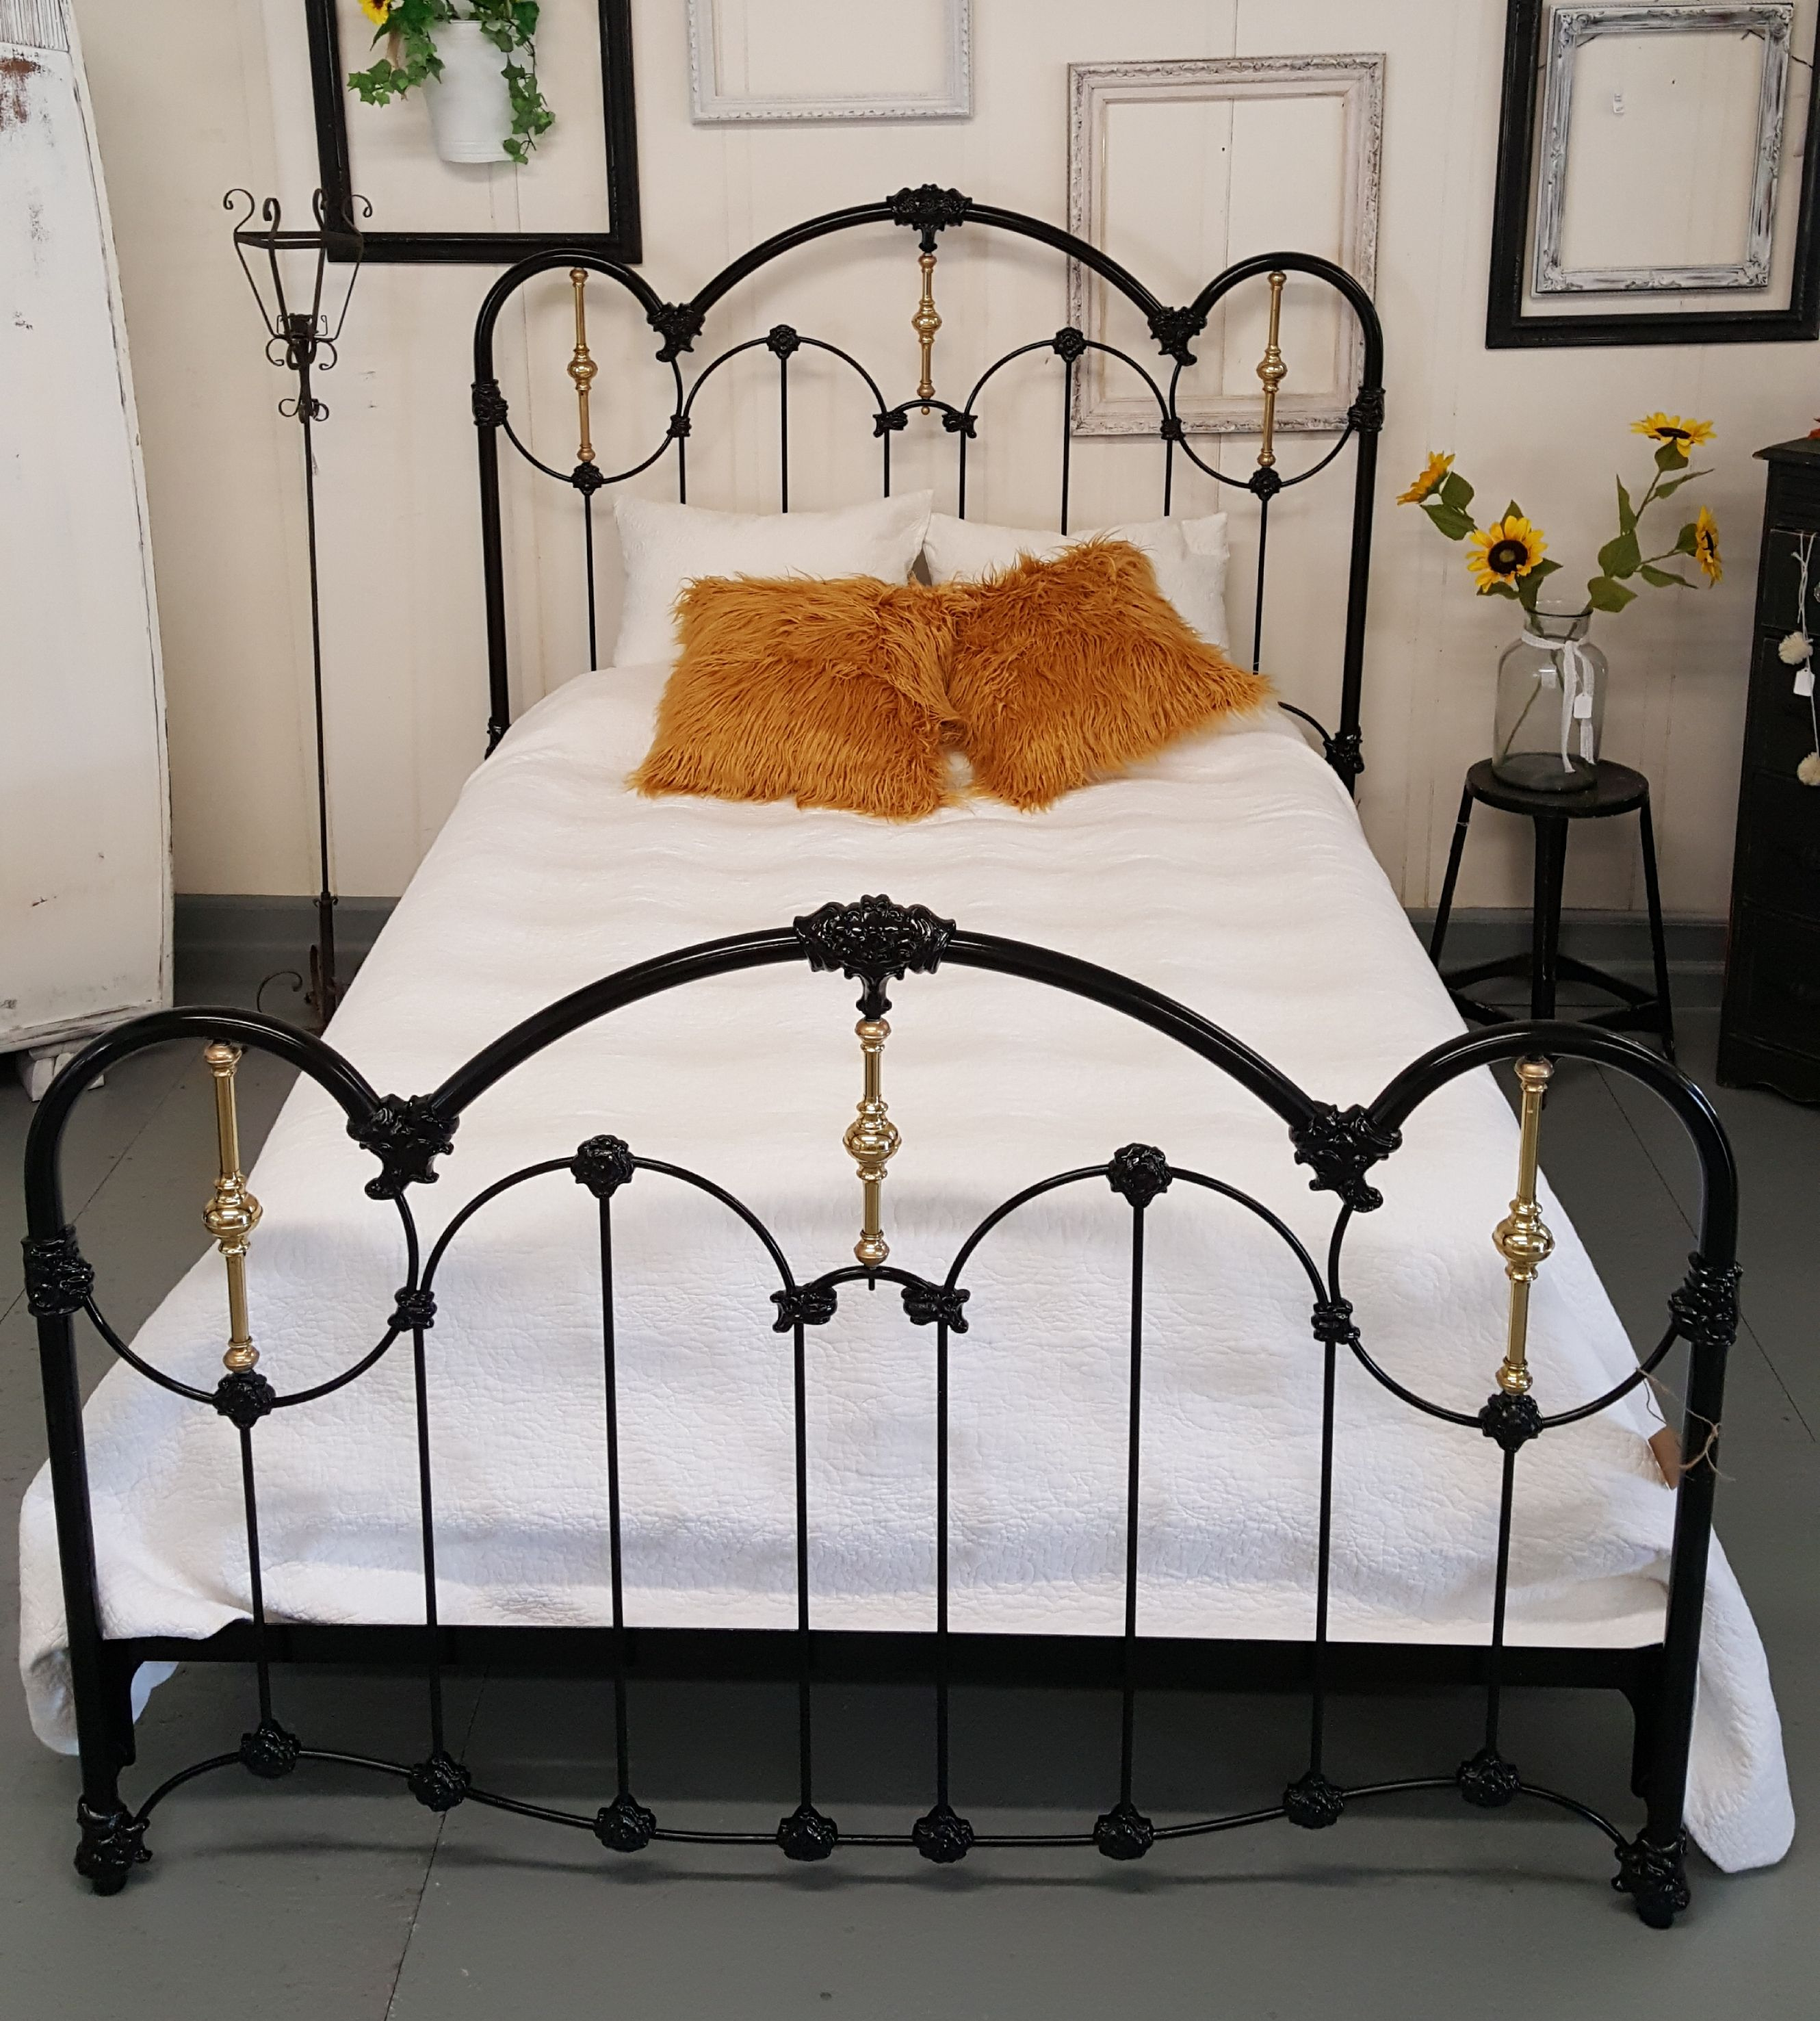 Antique Black Queen Size Iron Bed With Gold Accents Available In